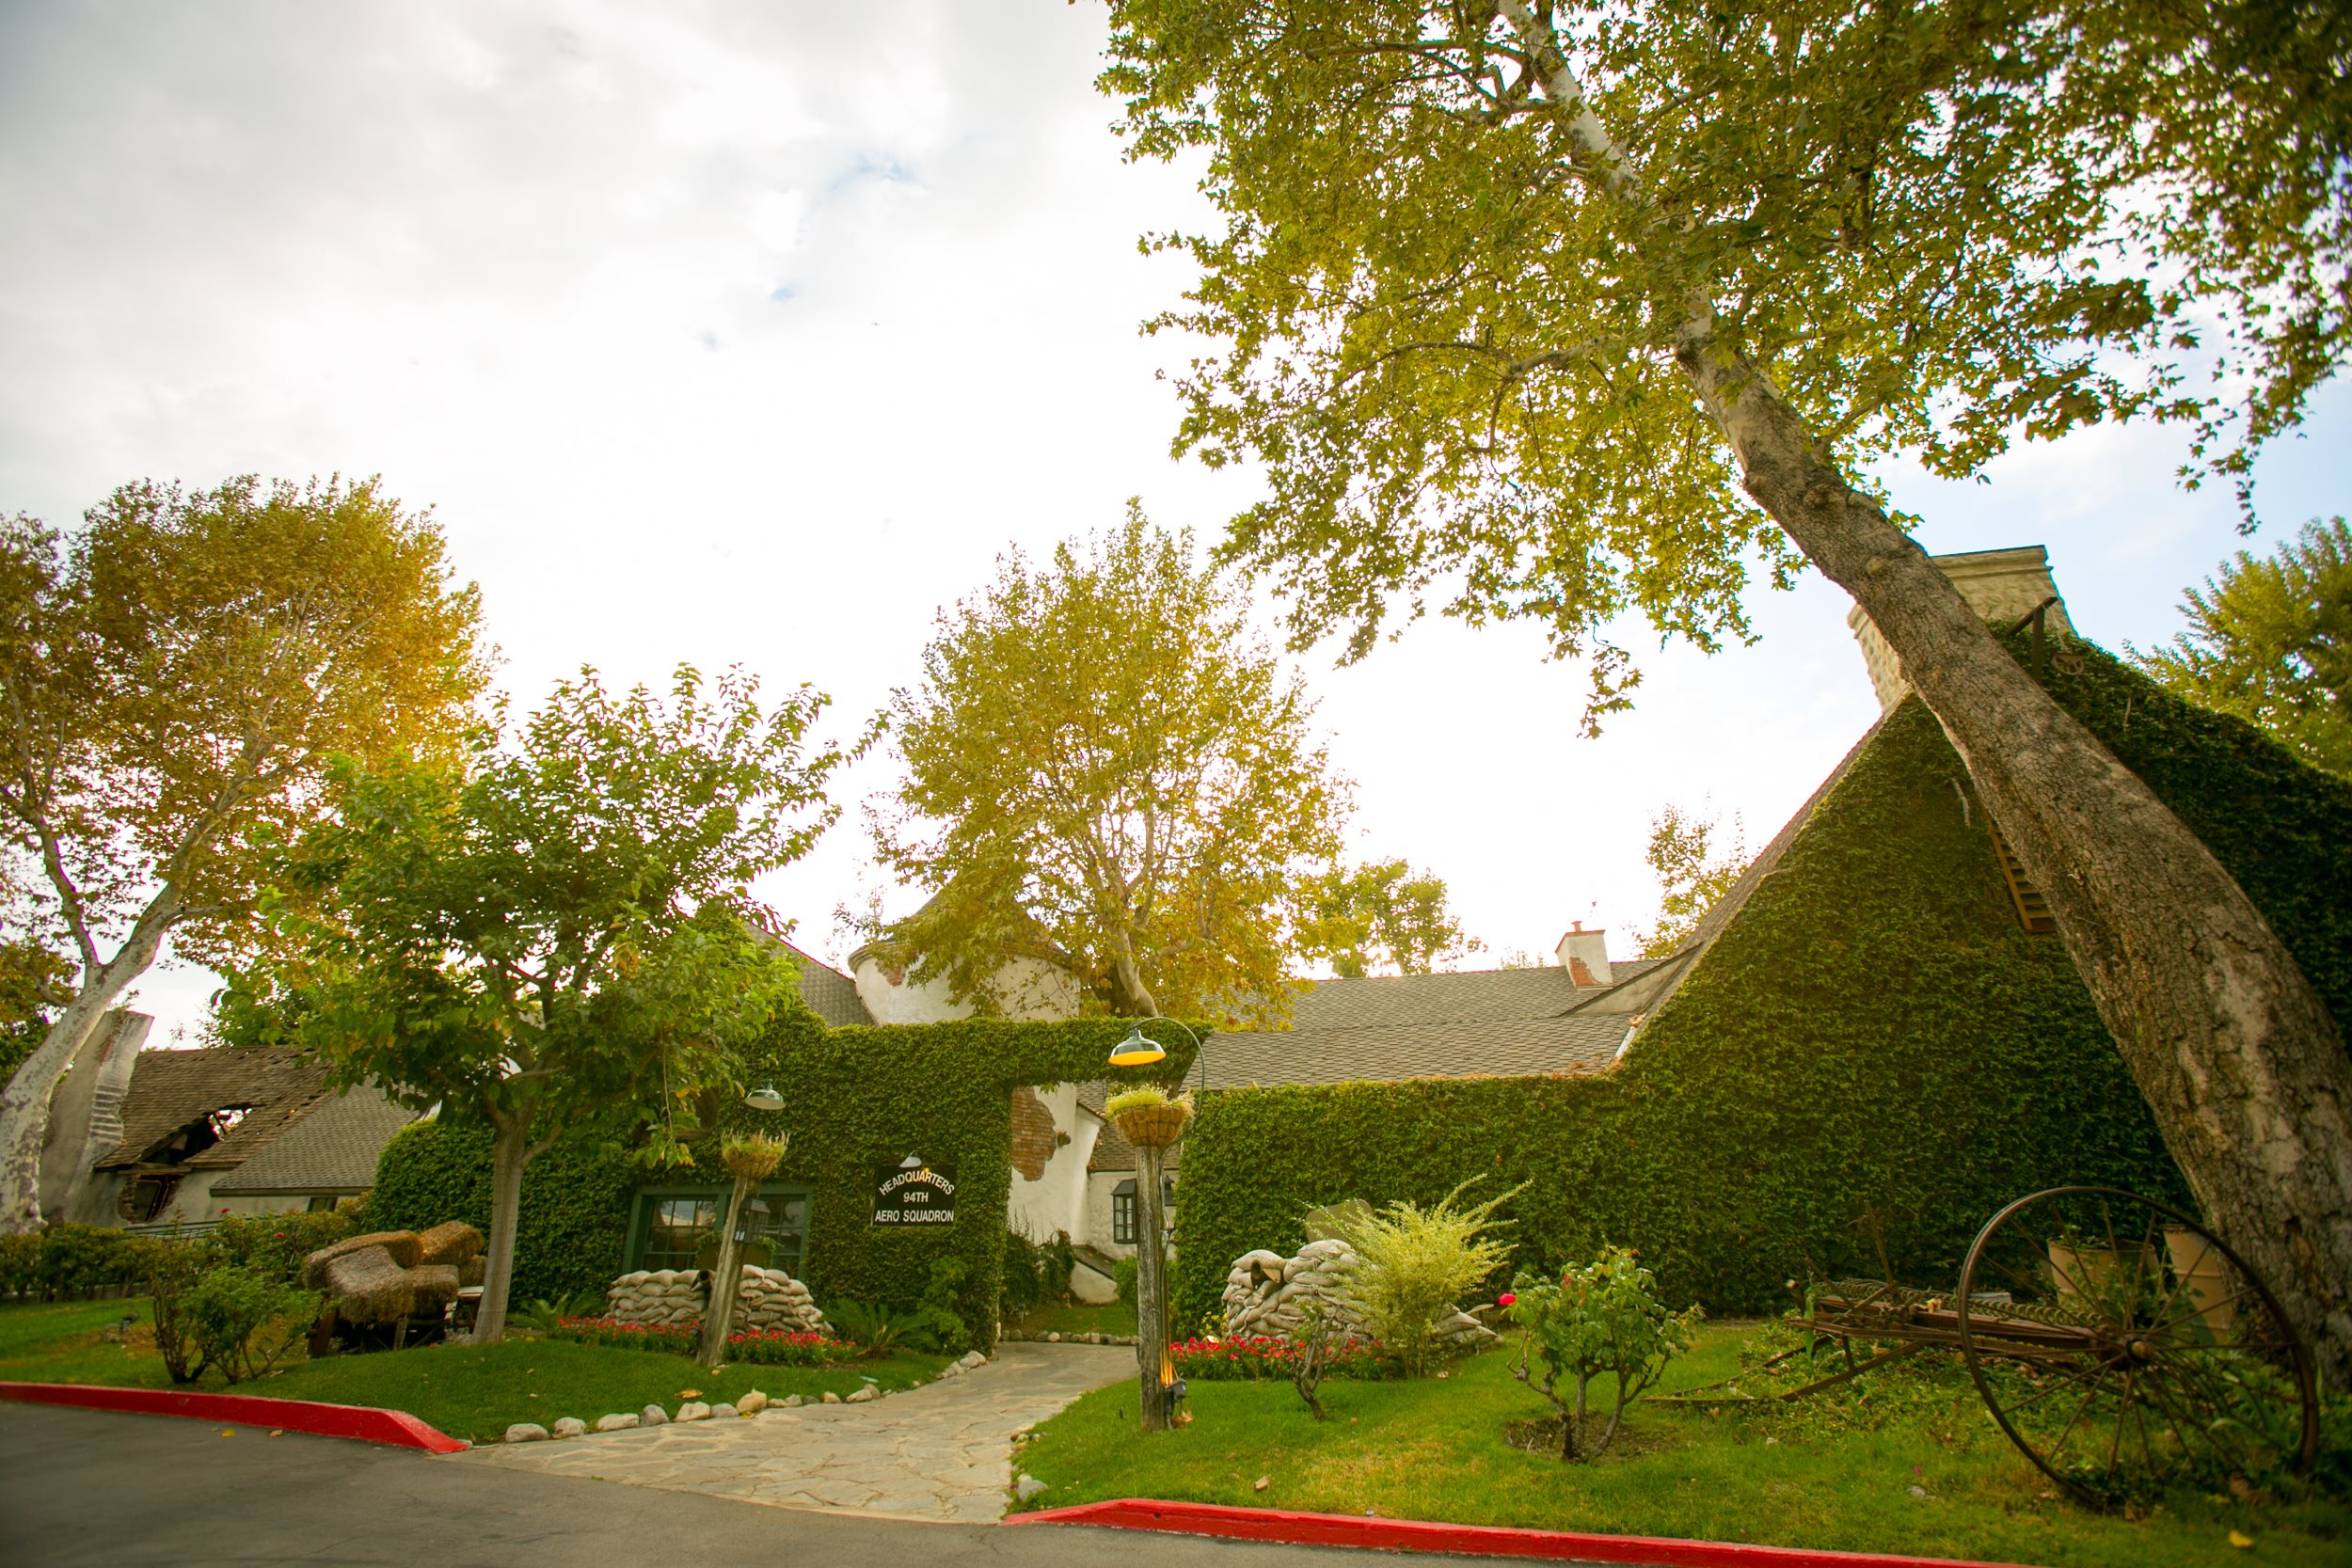 94th Aero Squadron Restaurant